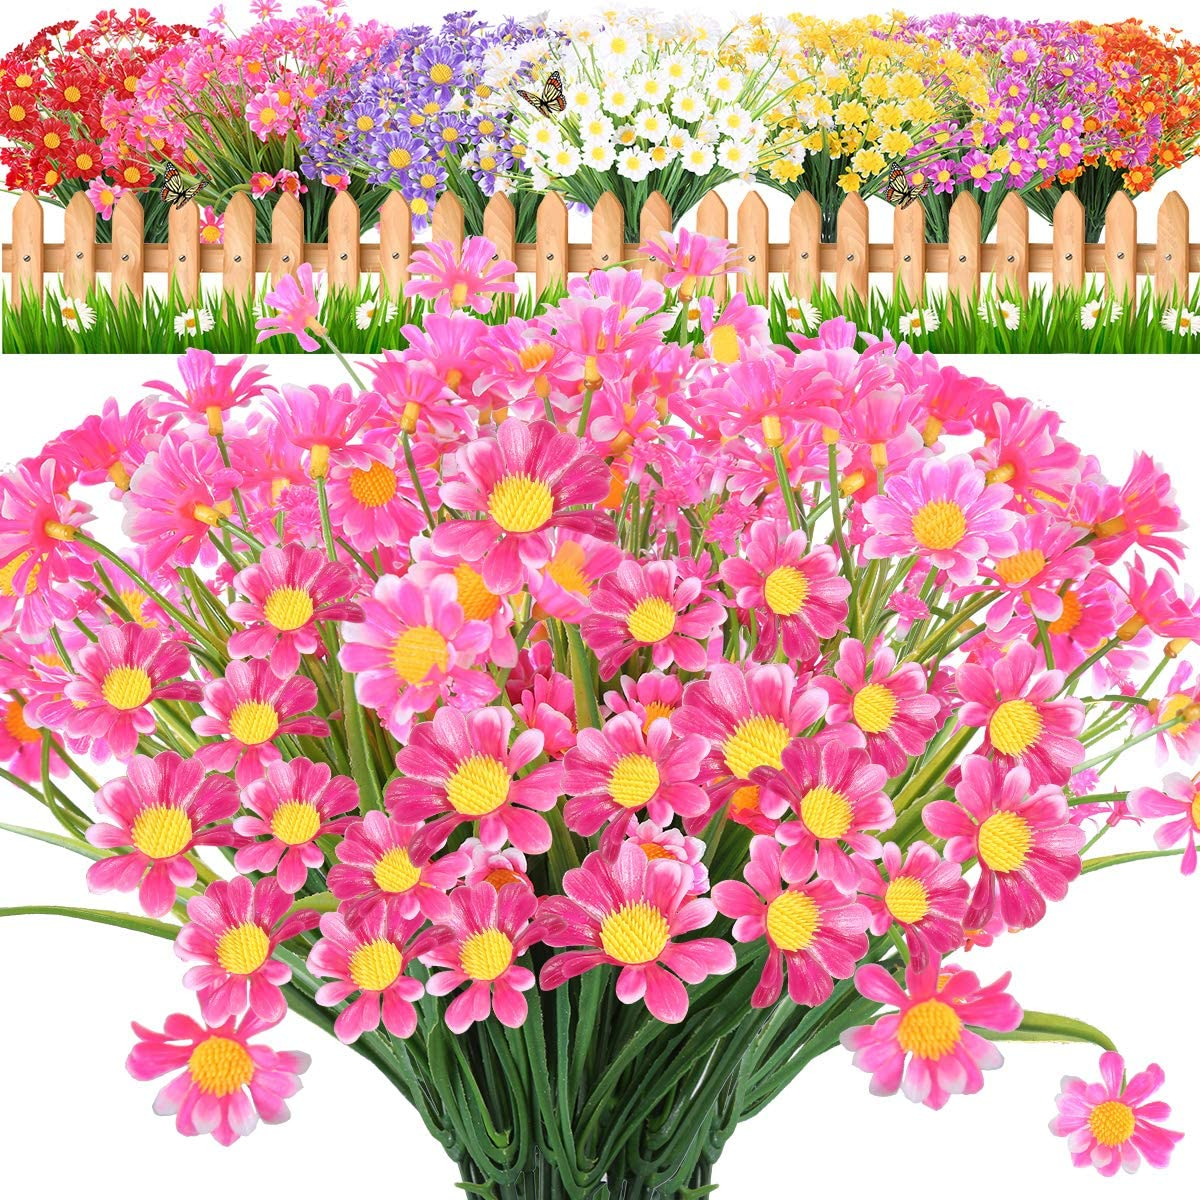 JEMONG 10 Bundles Artificial Daisies Flowers UV Resistant Shrubs,No Fade Faux Flowers for Indoor Outside Hanging Plants Garden Porch Window Box Décor (Pink)